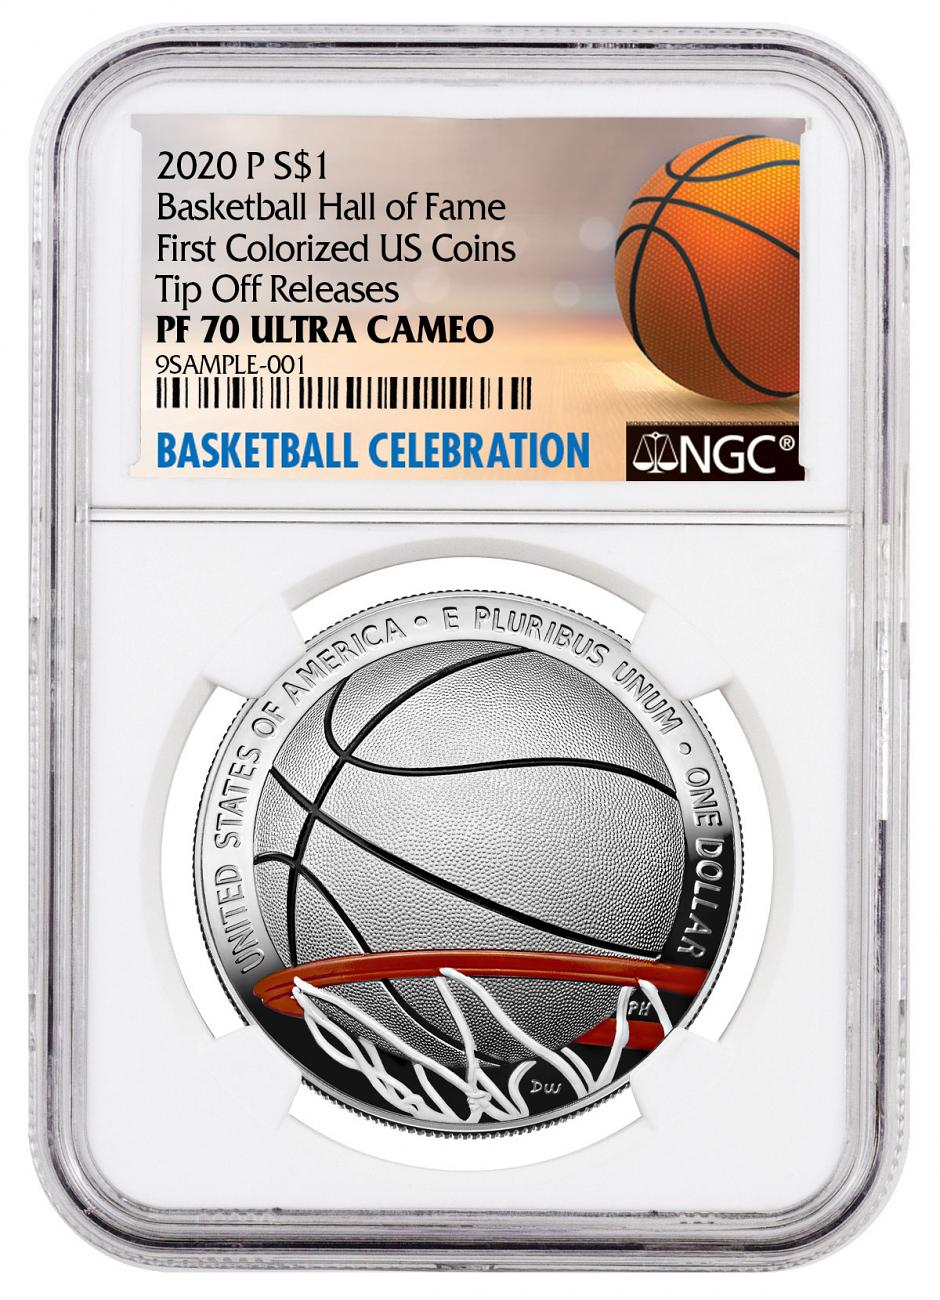 2020-P Basketball Hall of Fame Commemorative Silver Dollar Colorized Proof Coin NGC PF70 UC Tip Off Releases Basketball Celebration Label